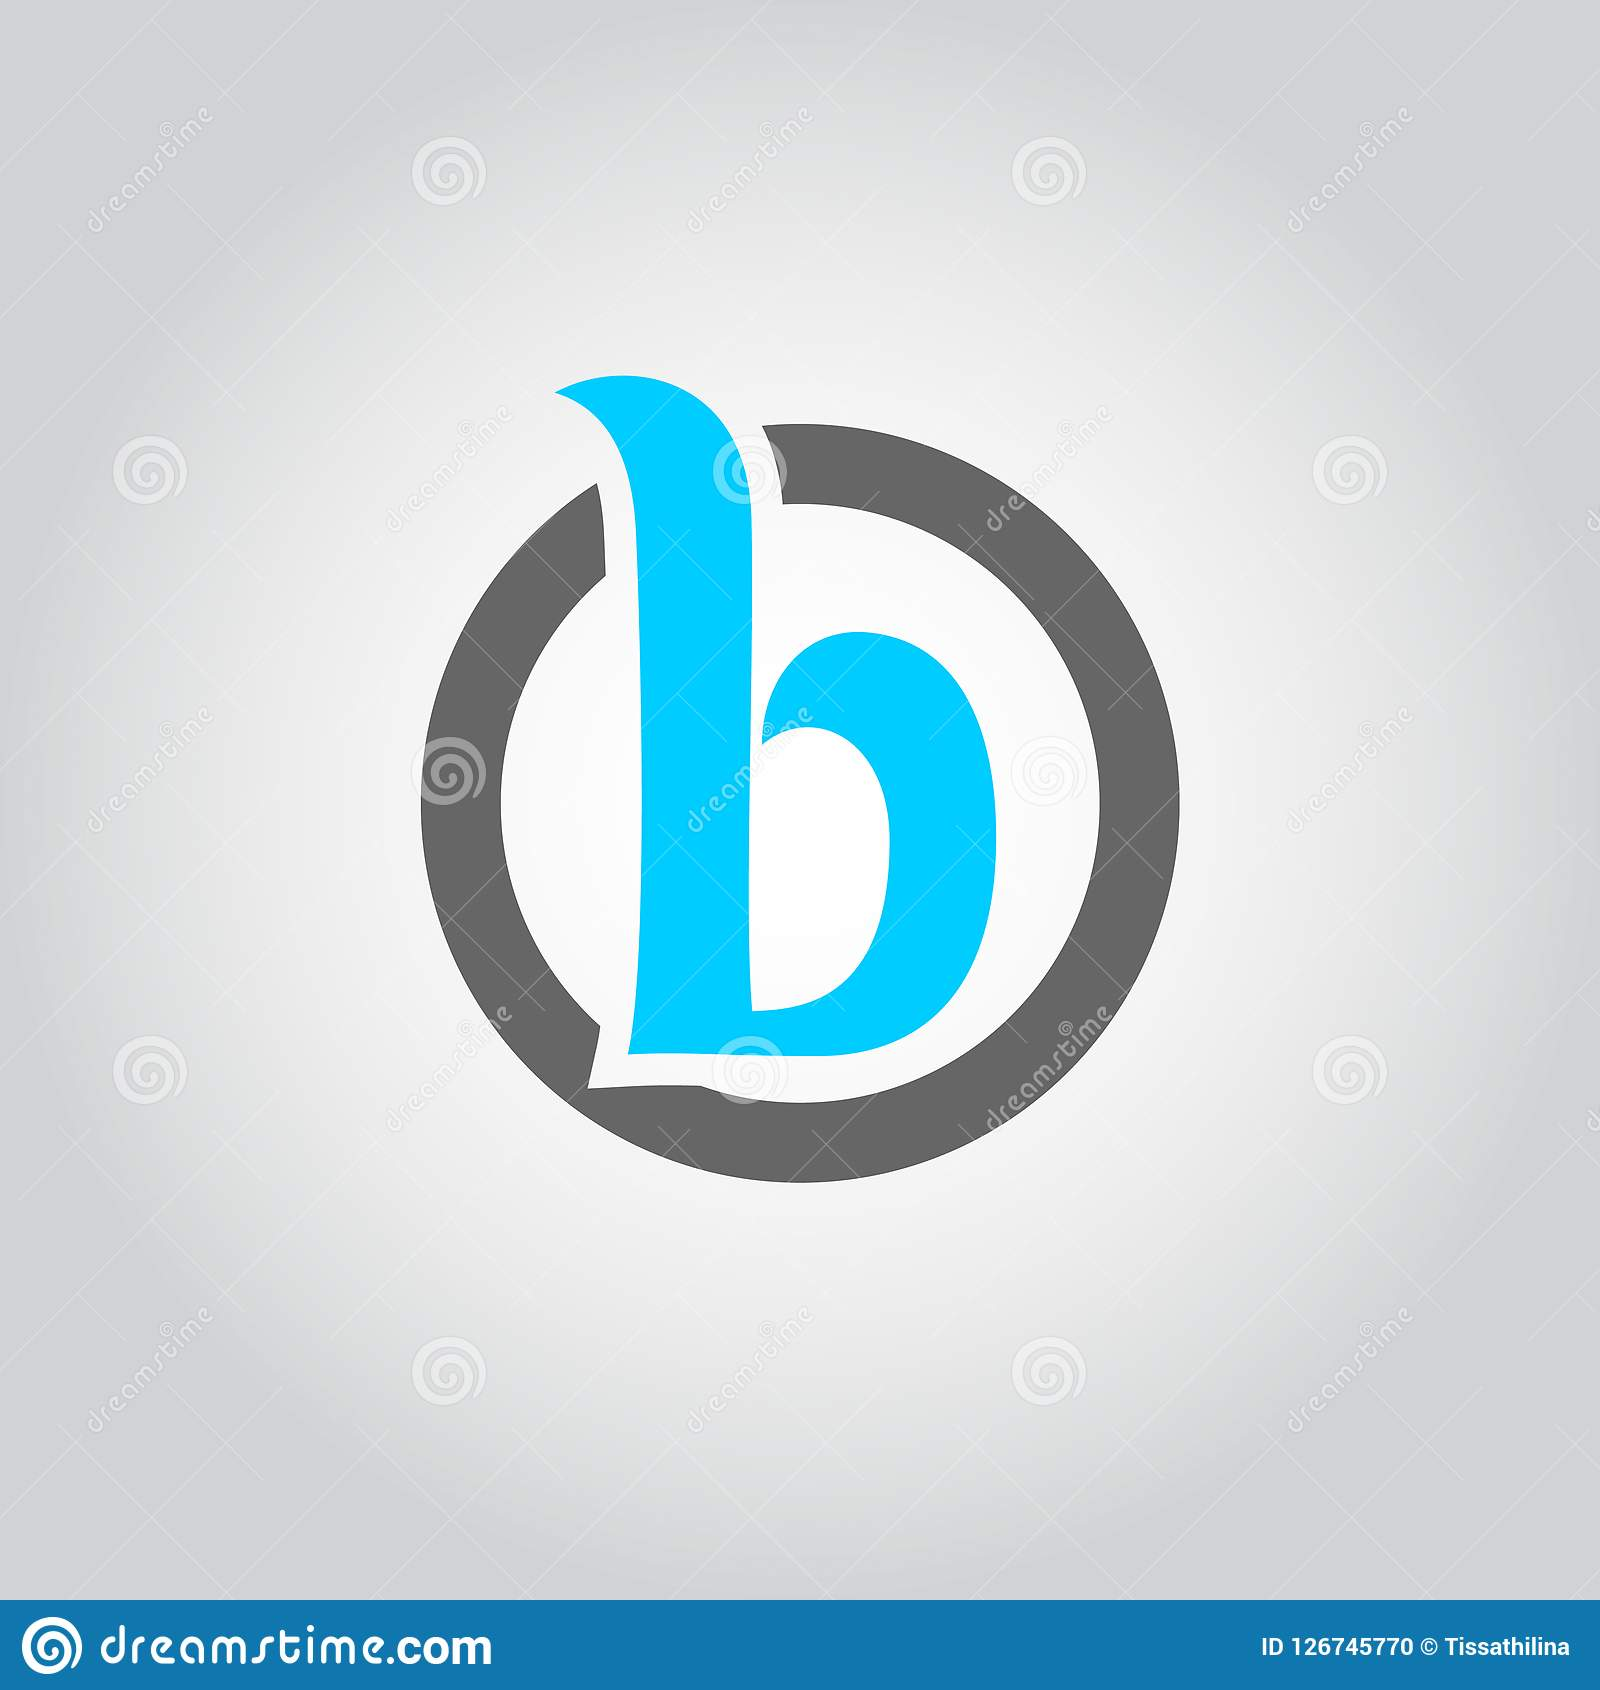 Abstract Letter Inside Circle Logo